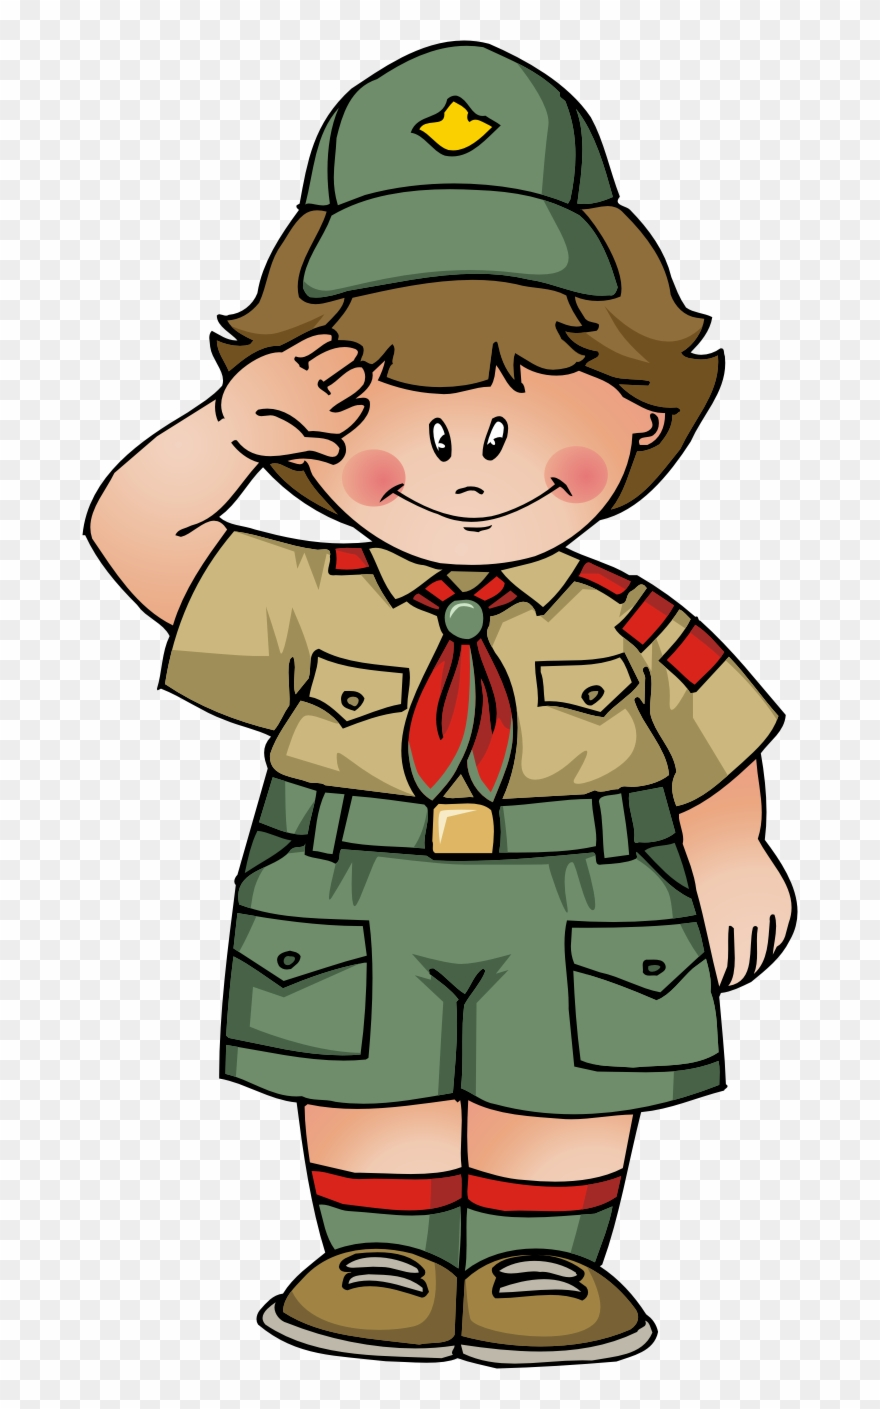 Boy scout smile clipart clipart library stock Boy Scouts Clipart - Boy Scout Clipart Png Transparent Png (#473141 ... clipart library stock